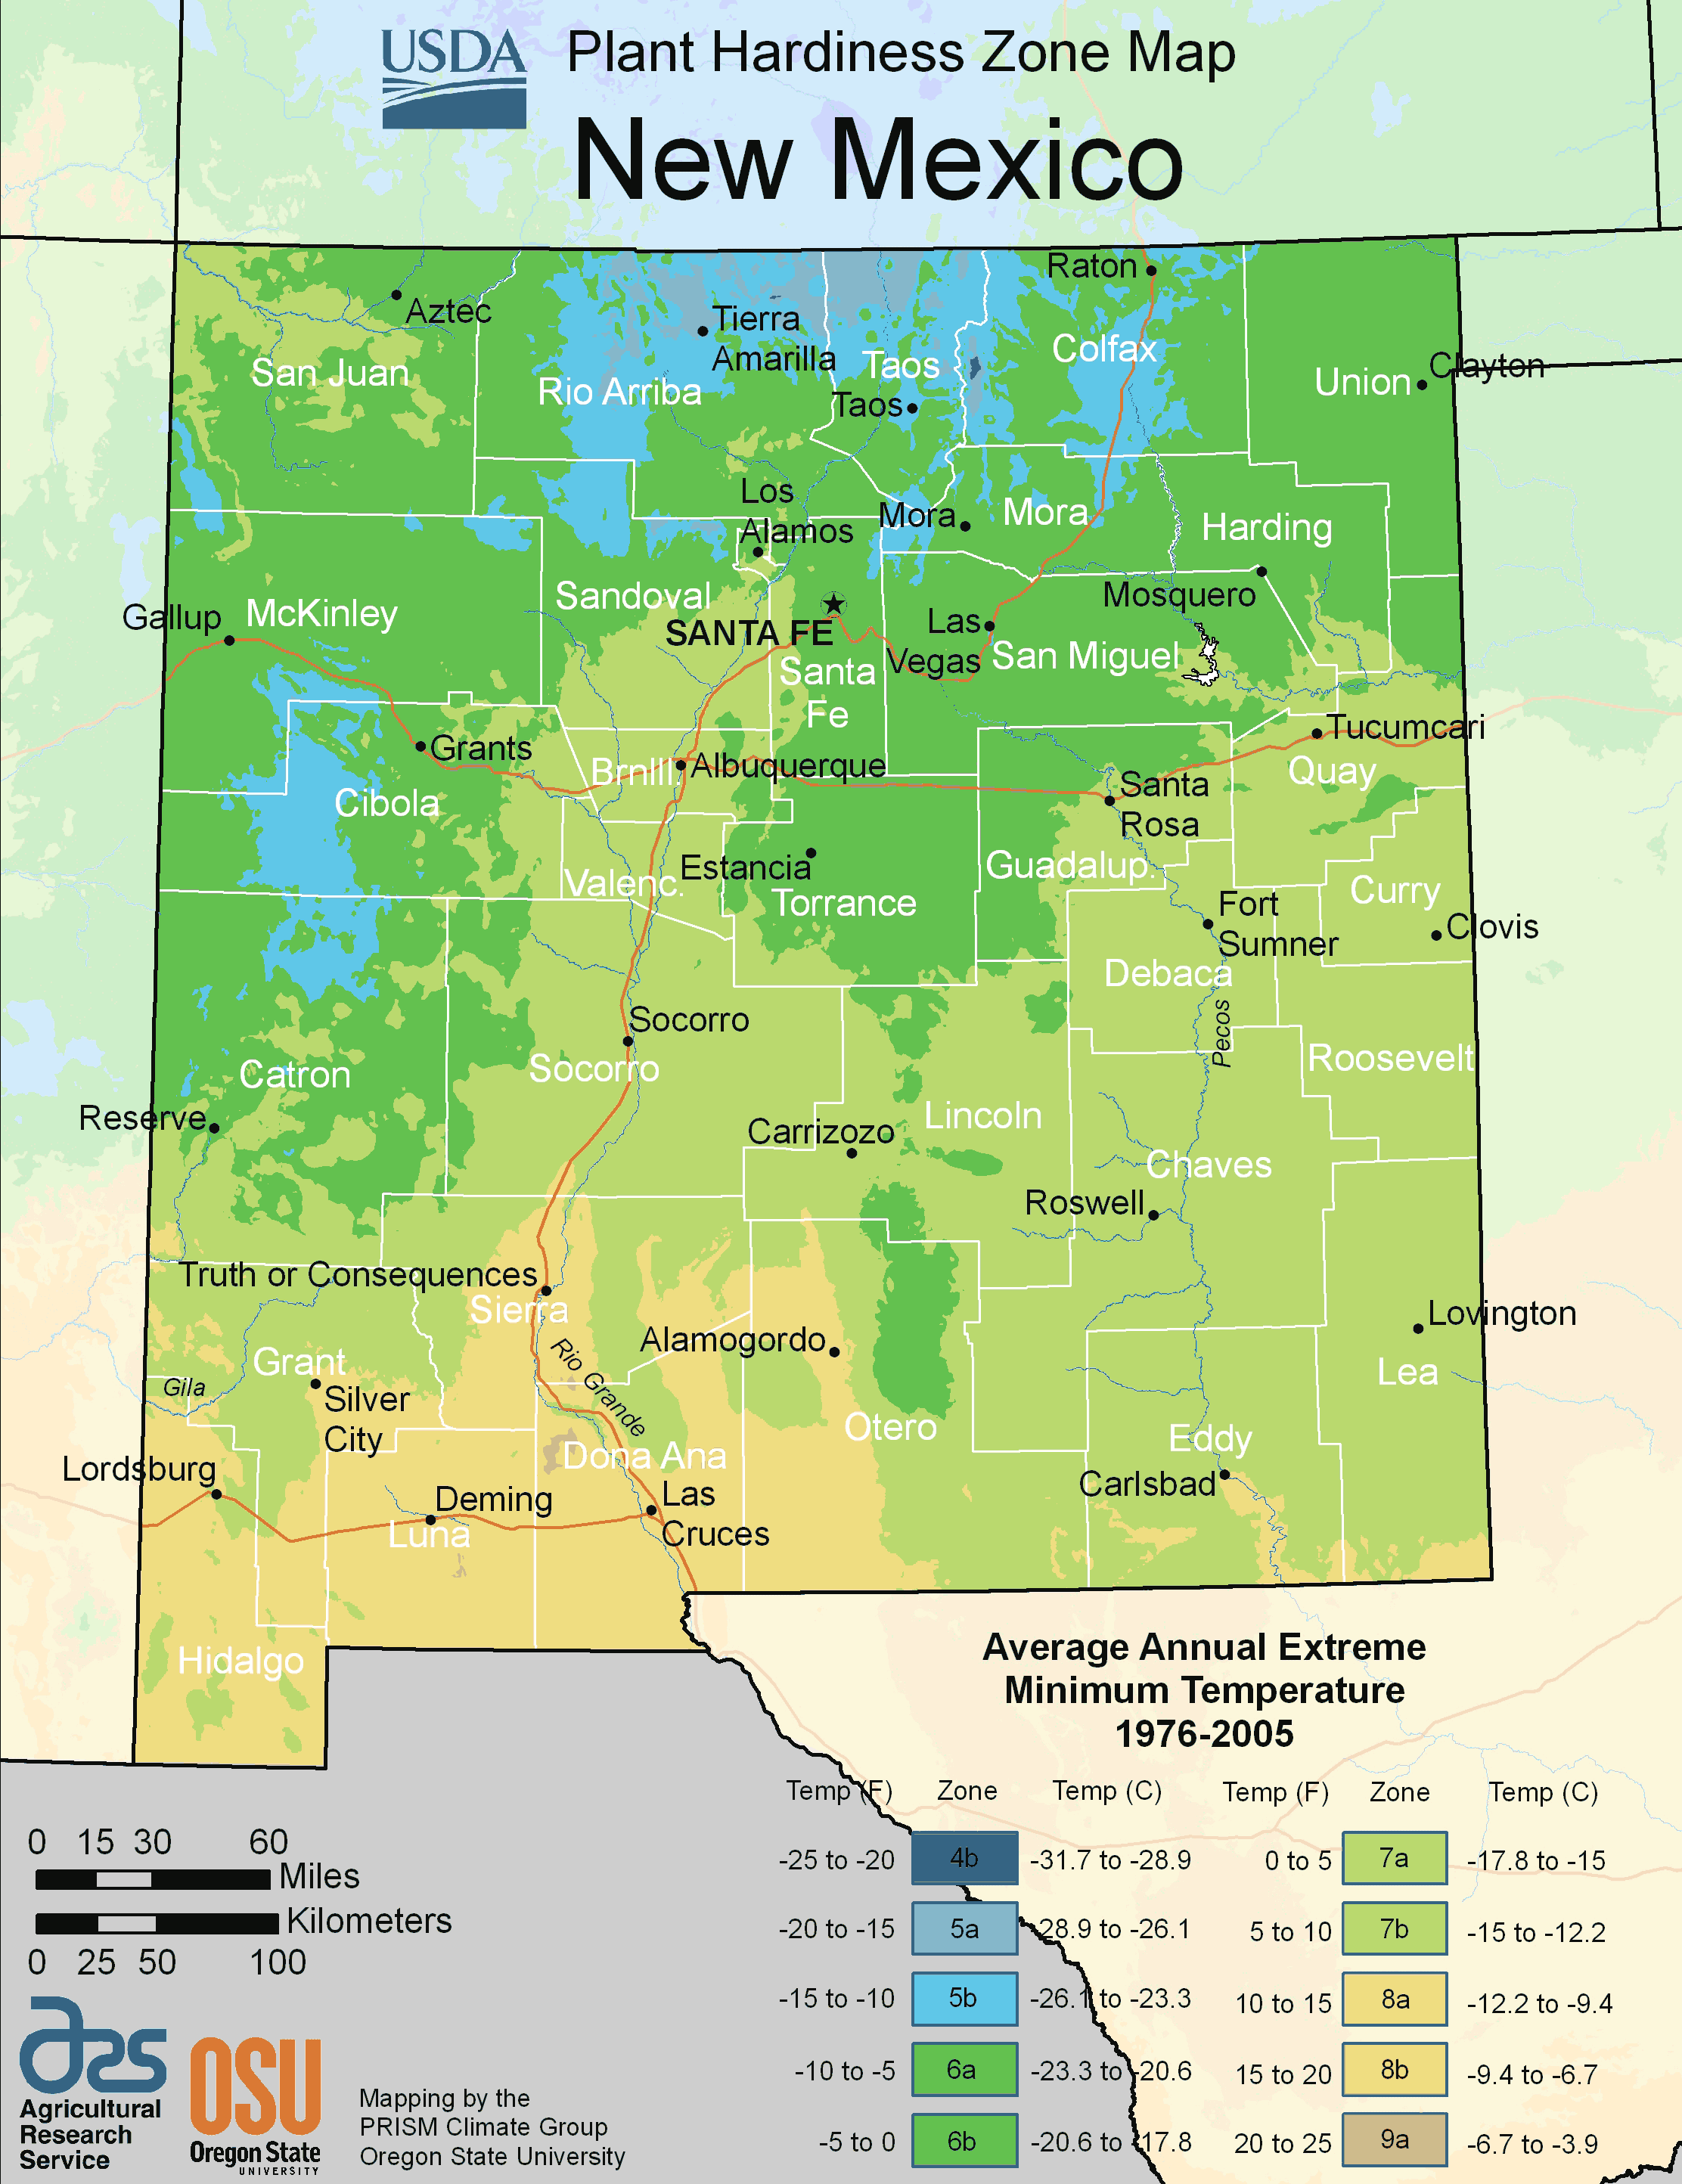 New Mexico Plant Hardiness Zone Map Mapsof Net